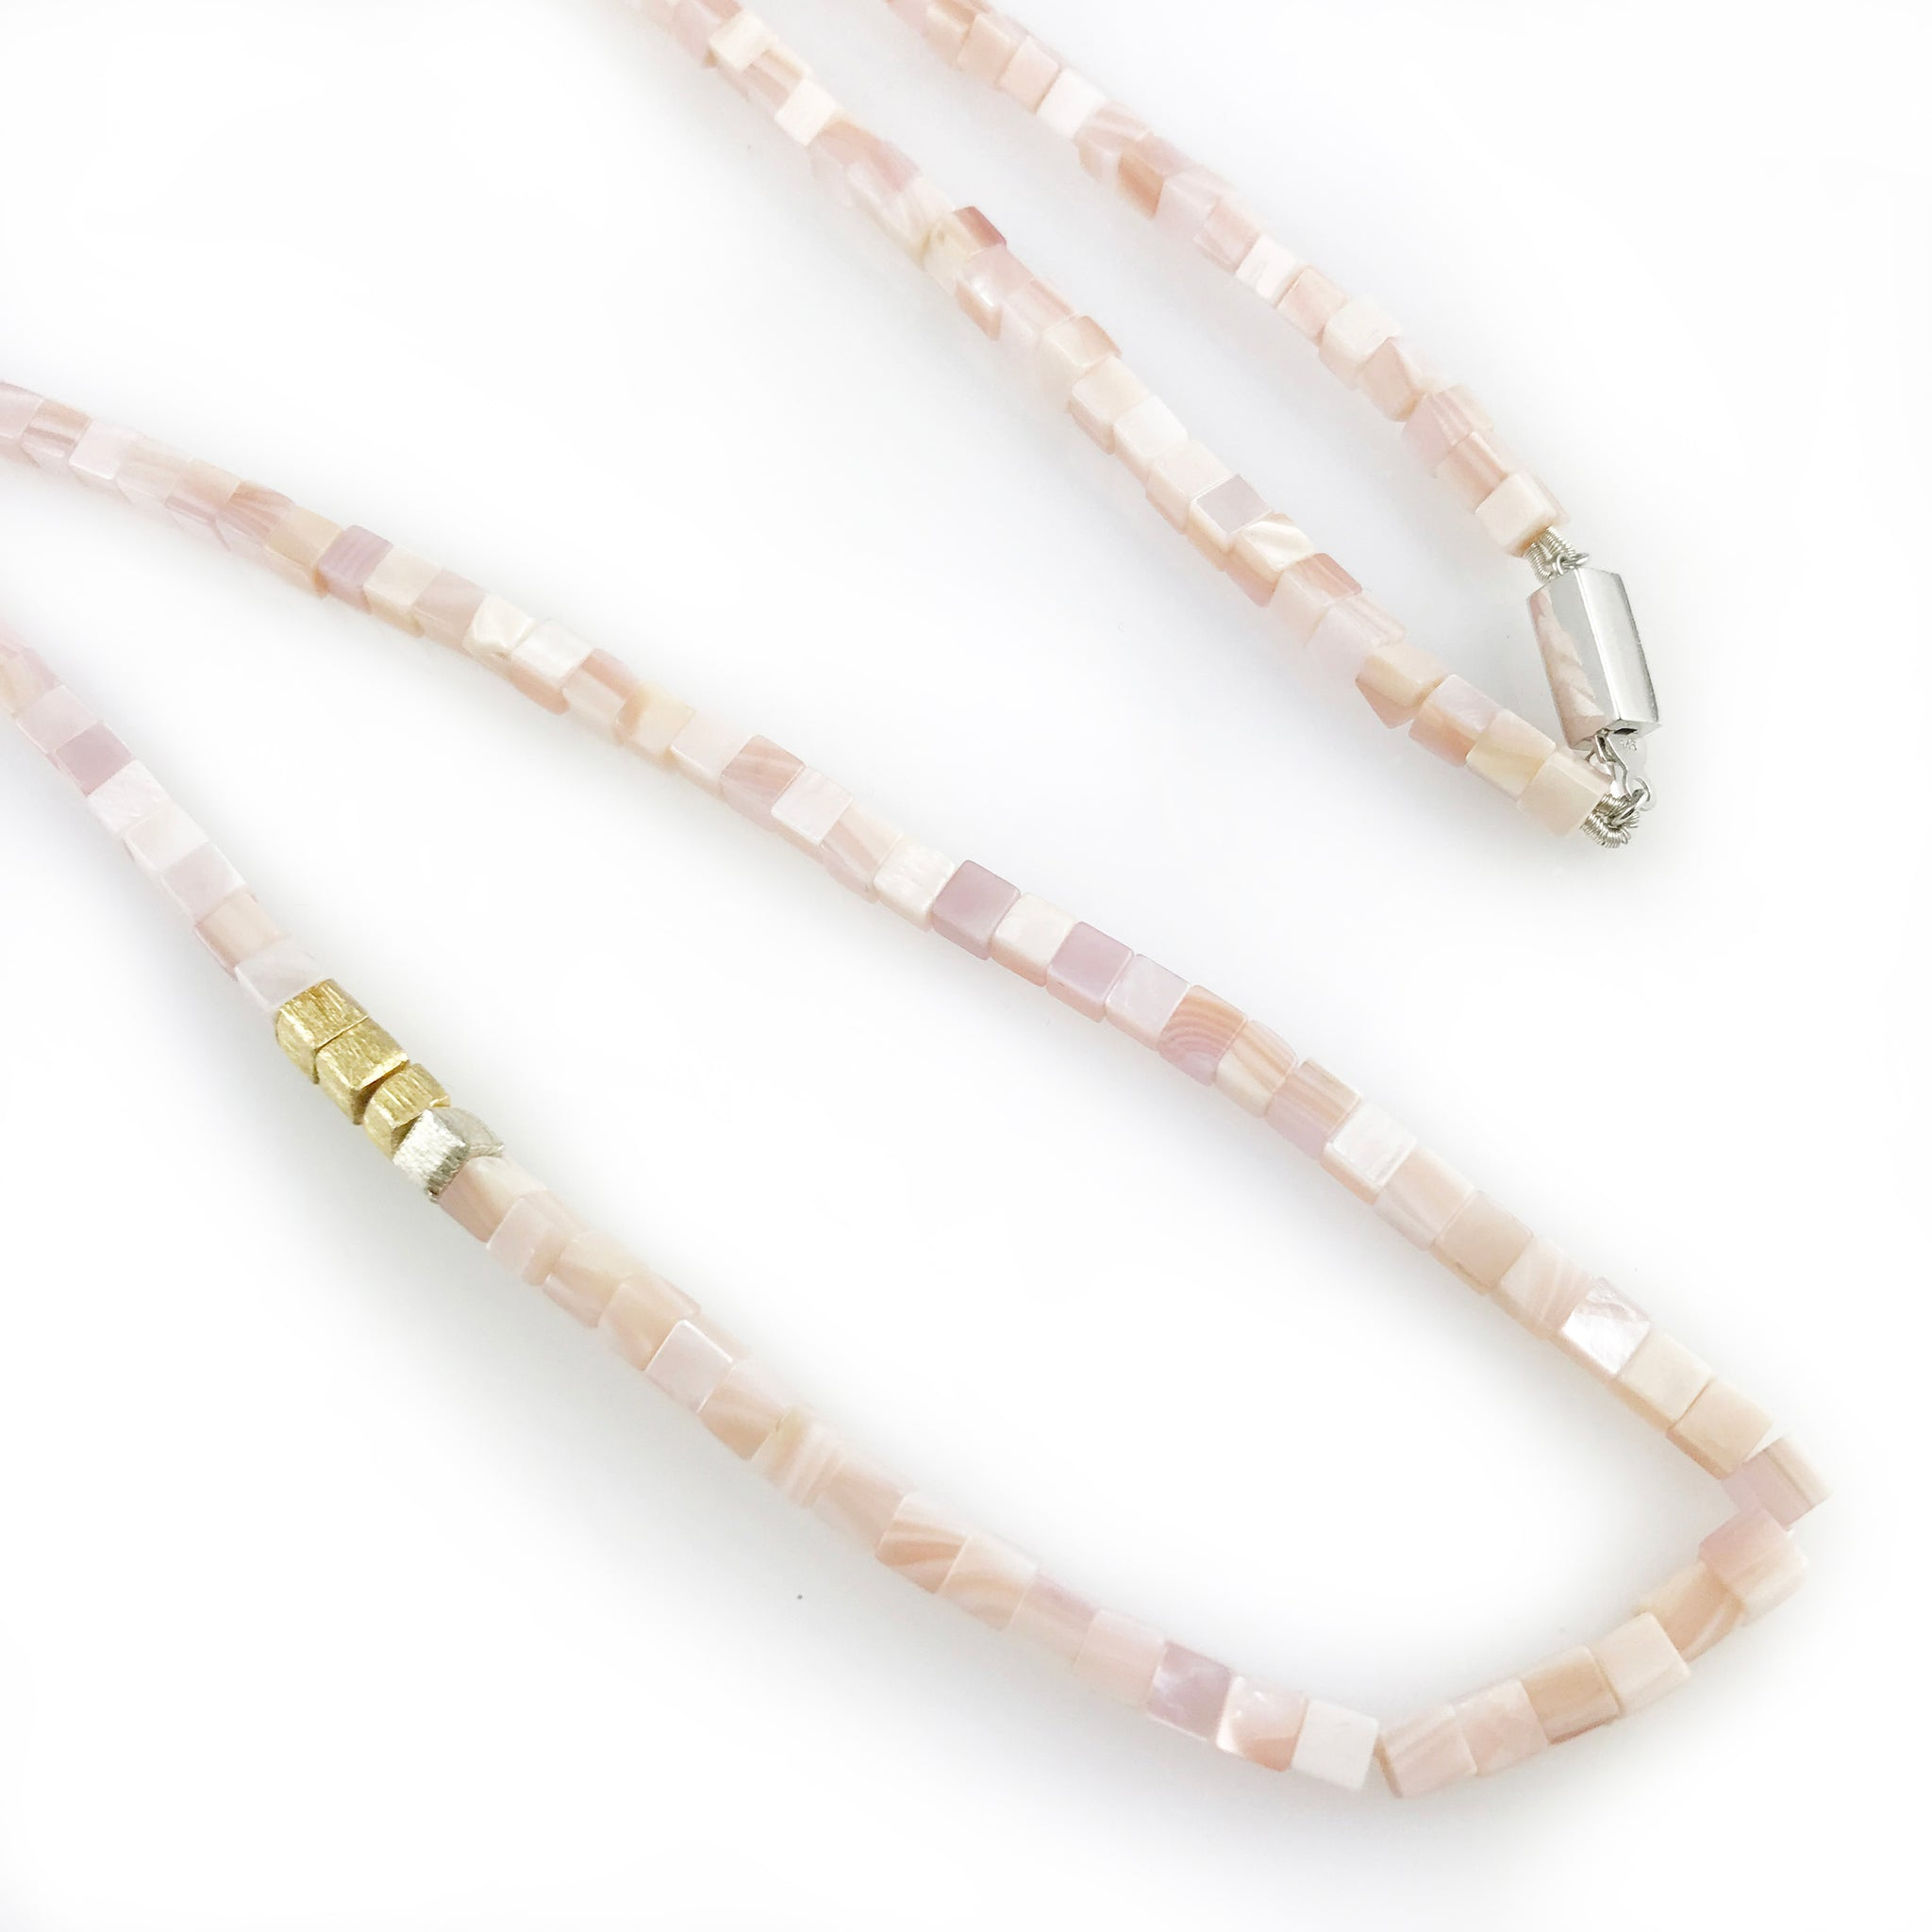 'Pearl Wonder' - pink square mother of pearls necklace